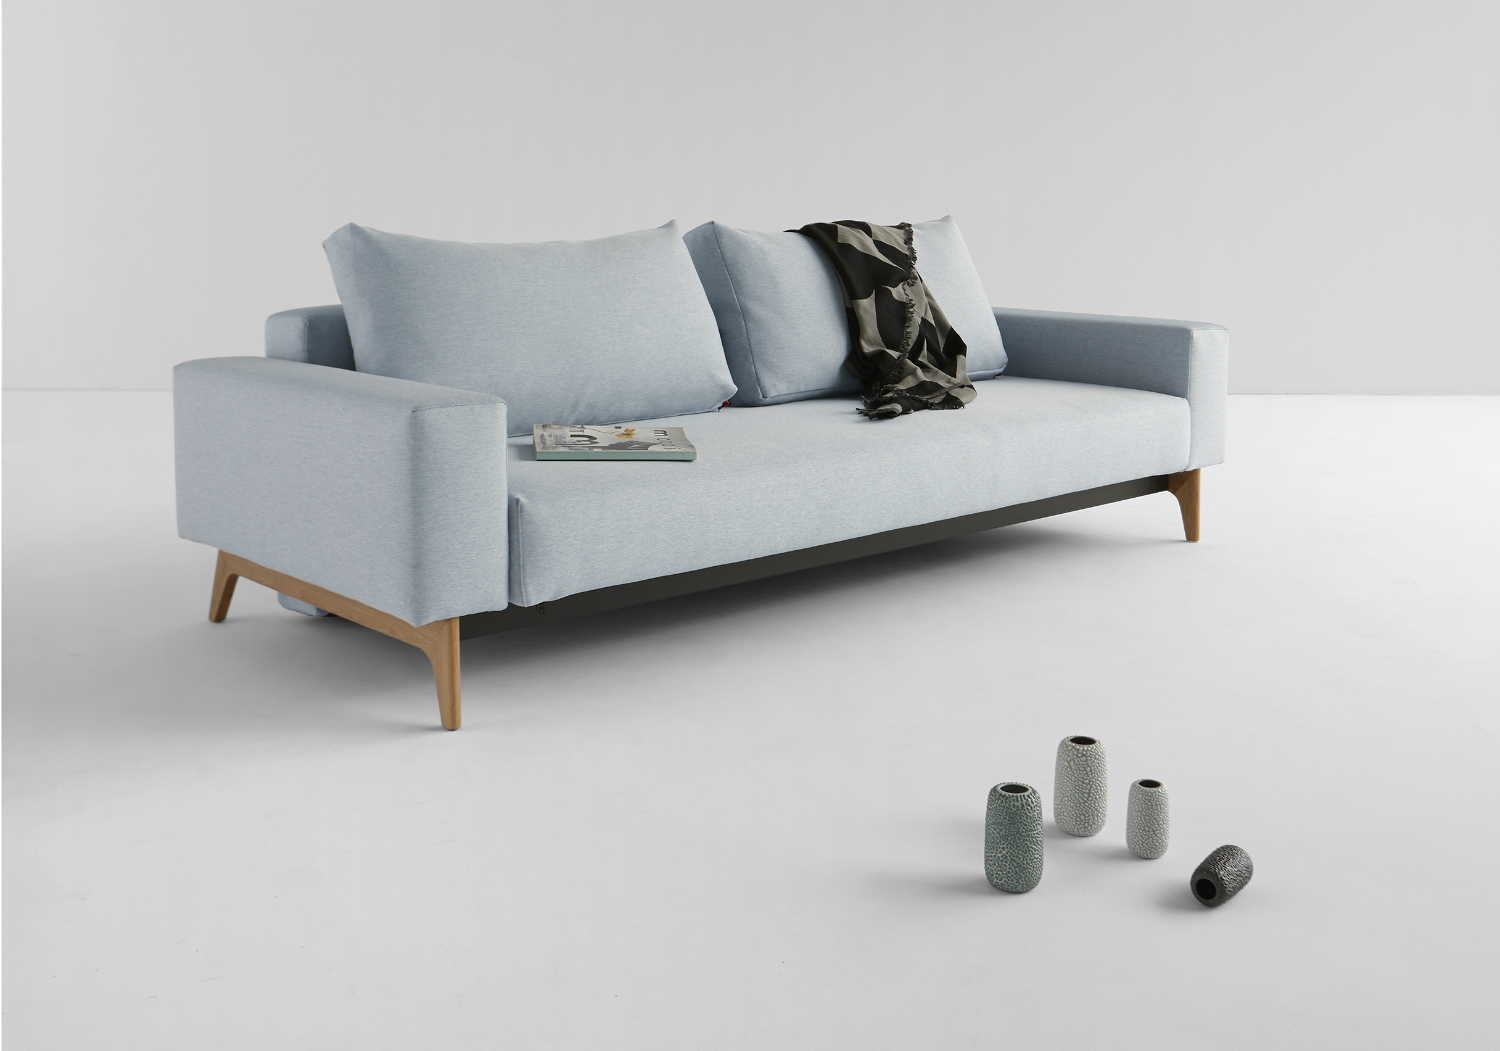 Idun-sofa-bed-556-soft-icy-blue-1-internet-edit